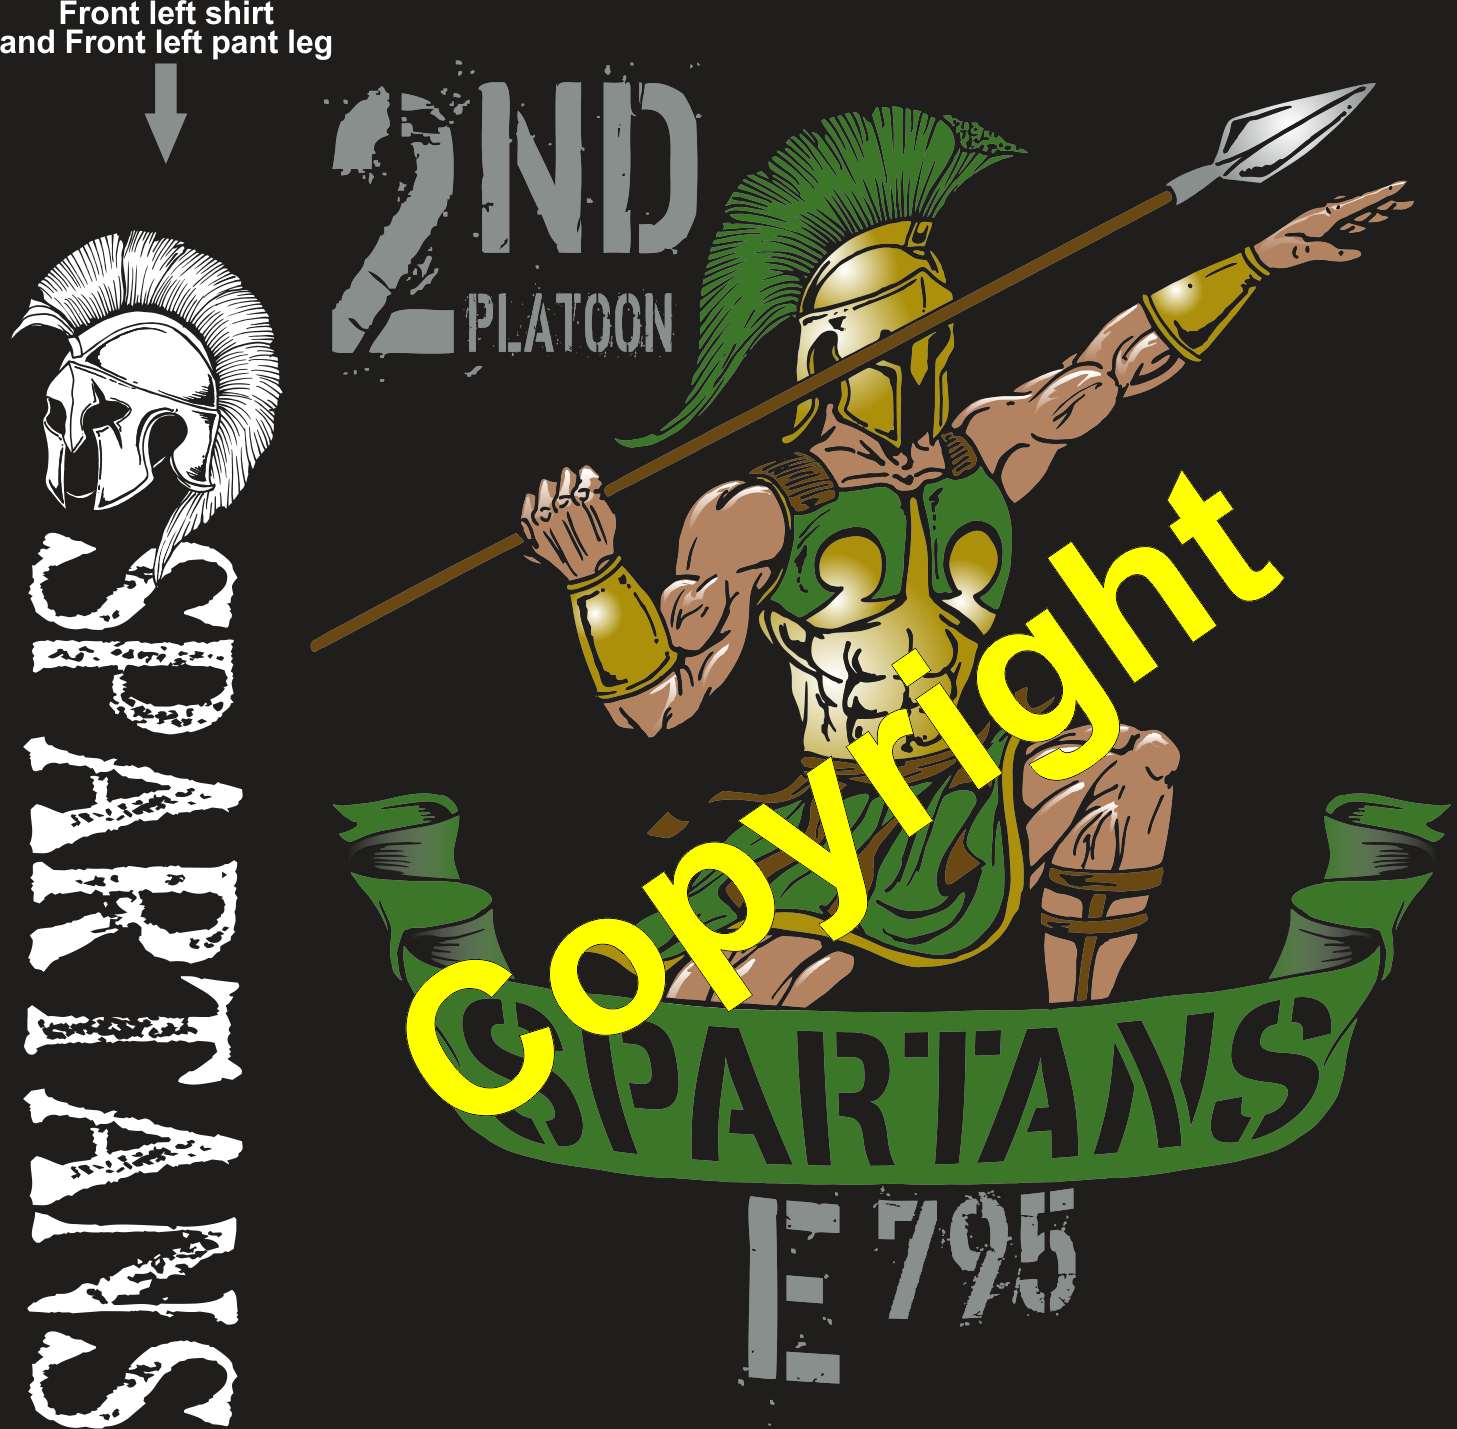 ECHO 795 SPARTANS GRADUATING DAY 6-14-2018 digital